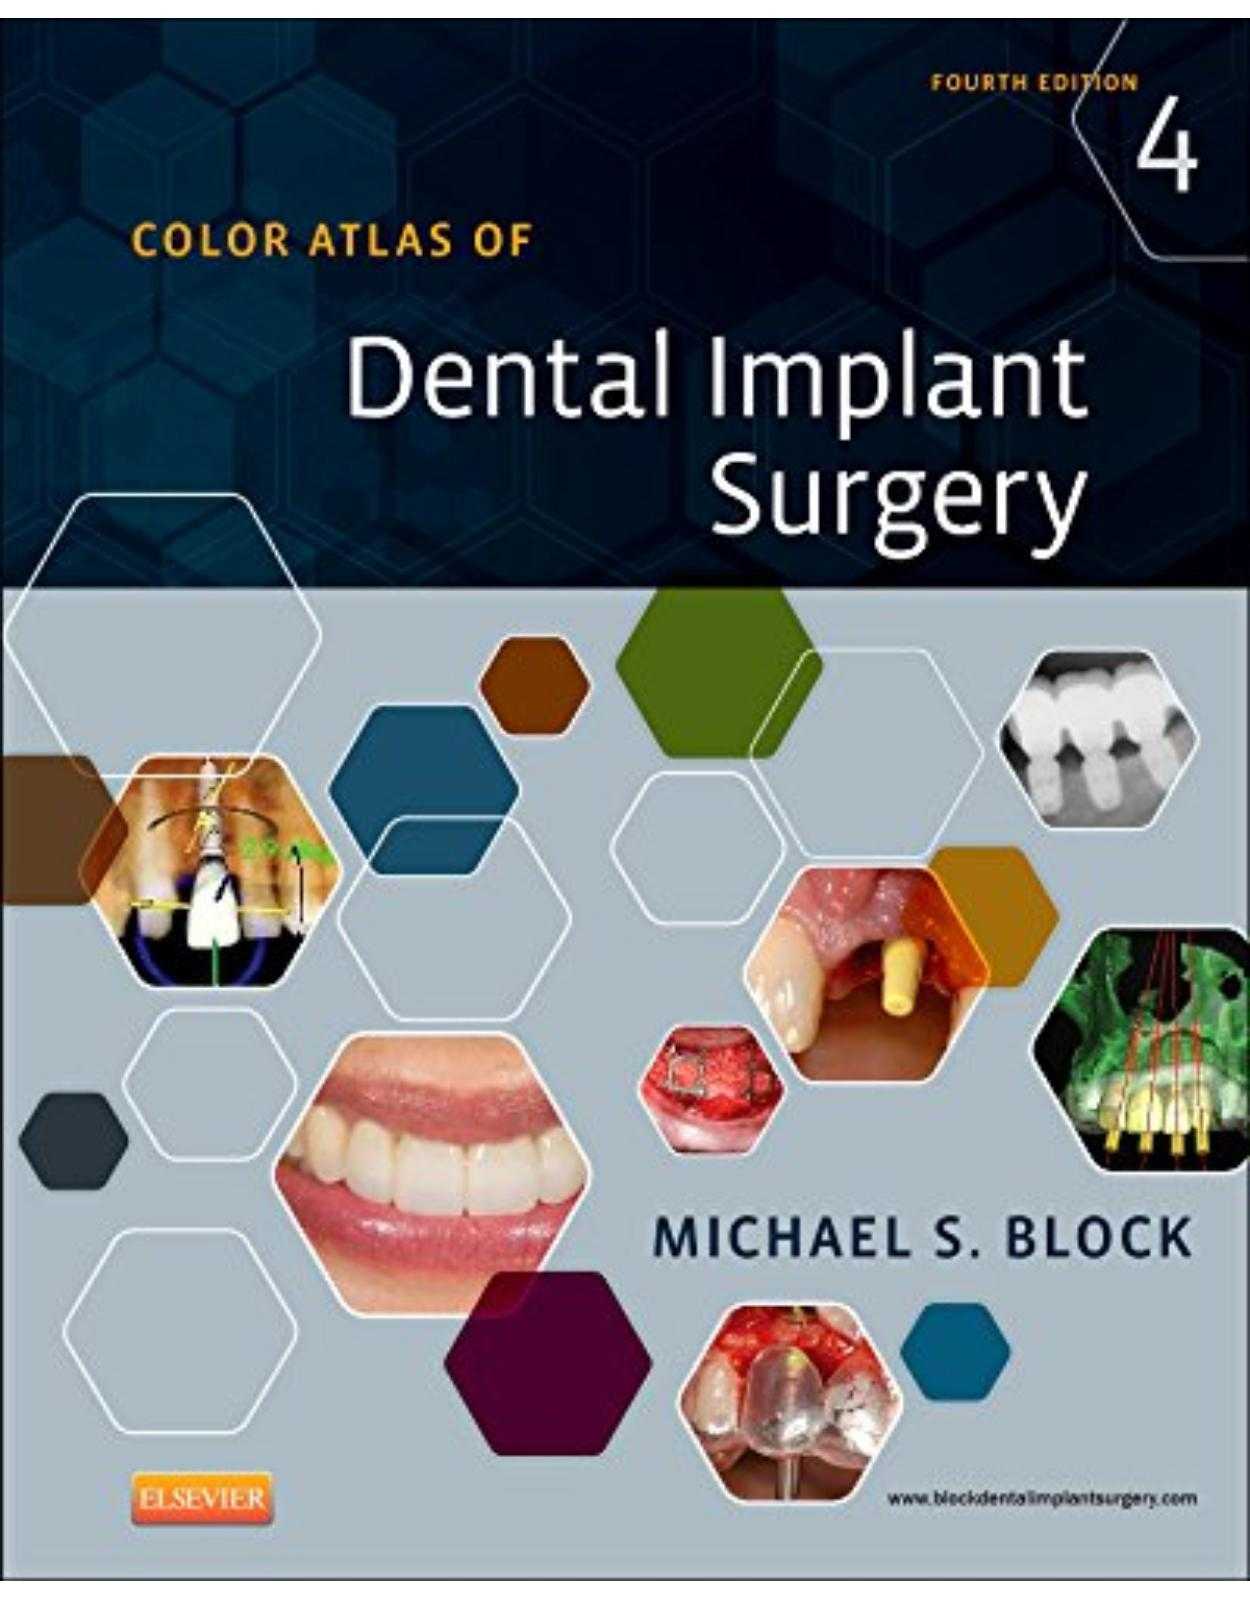 Color Atlas of Dental Implant Surgery, 4e